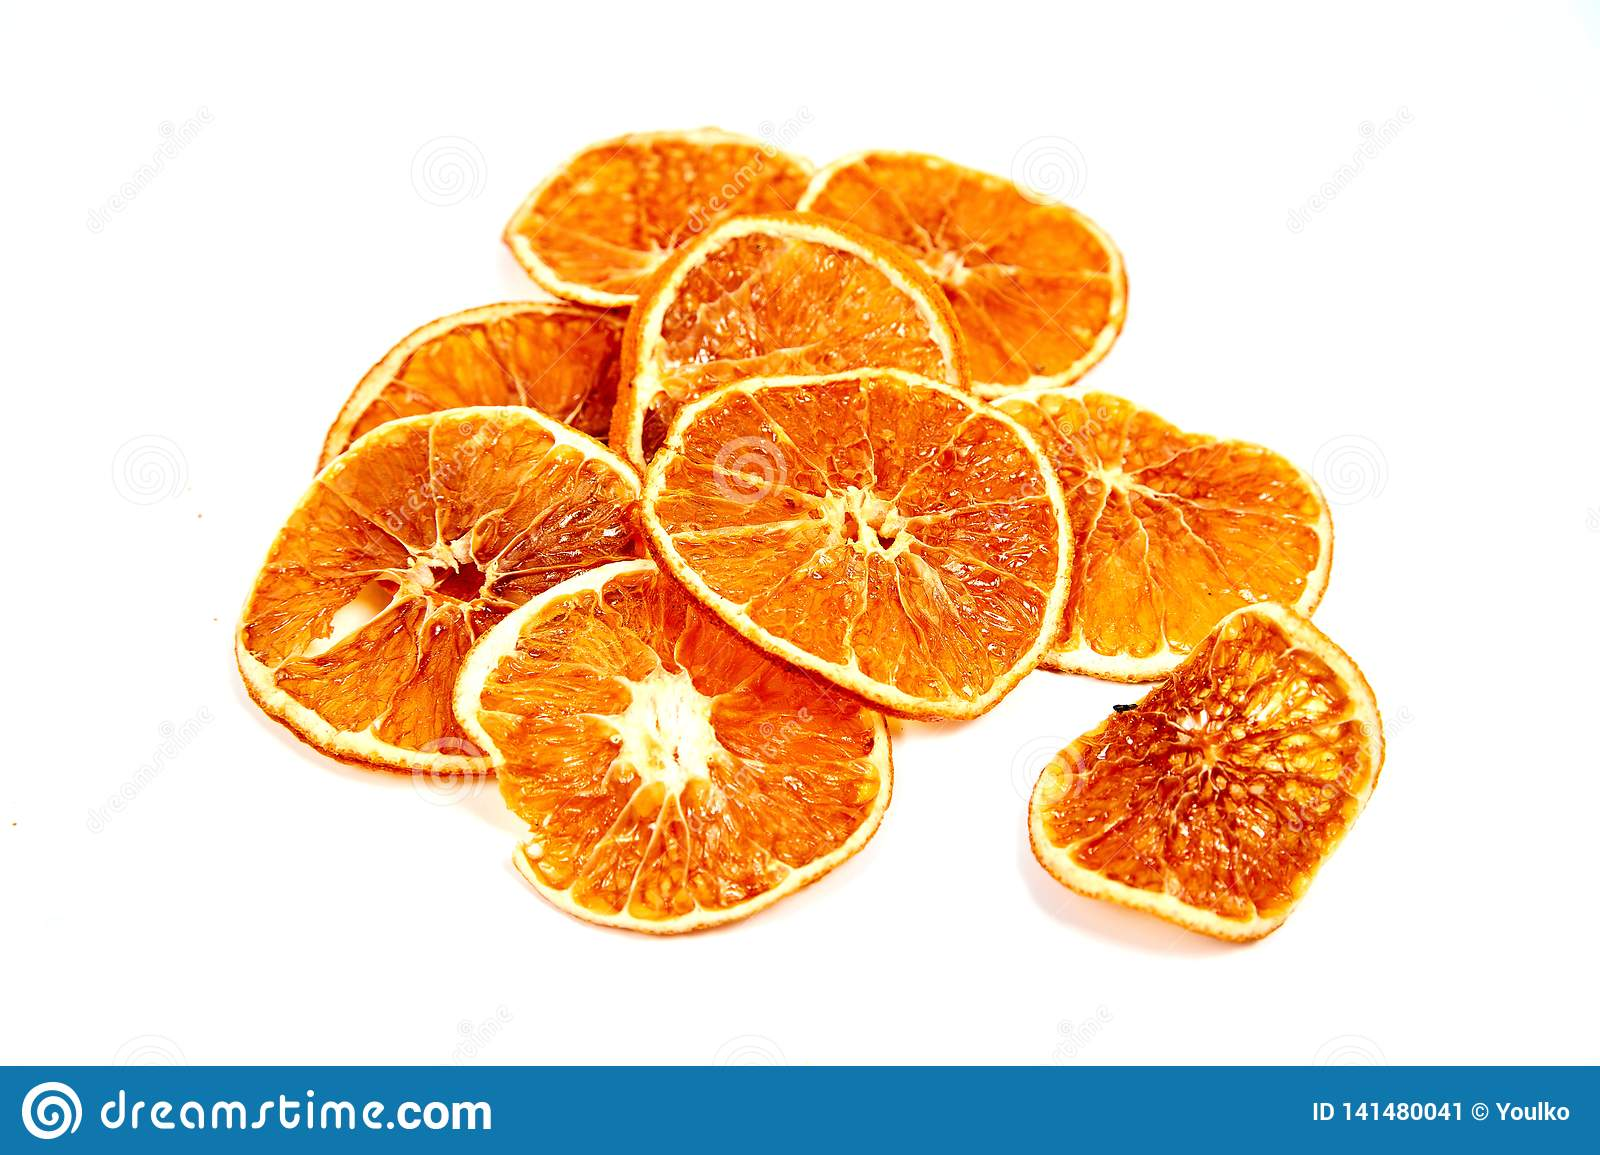 rings of dried tangerine on a white background